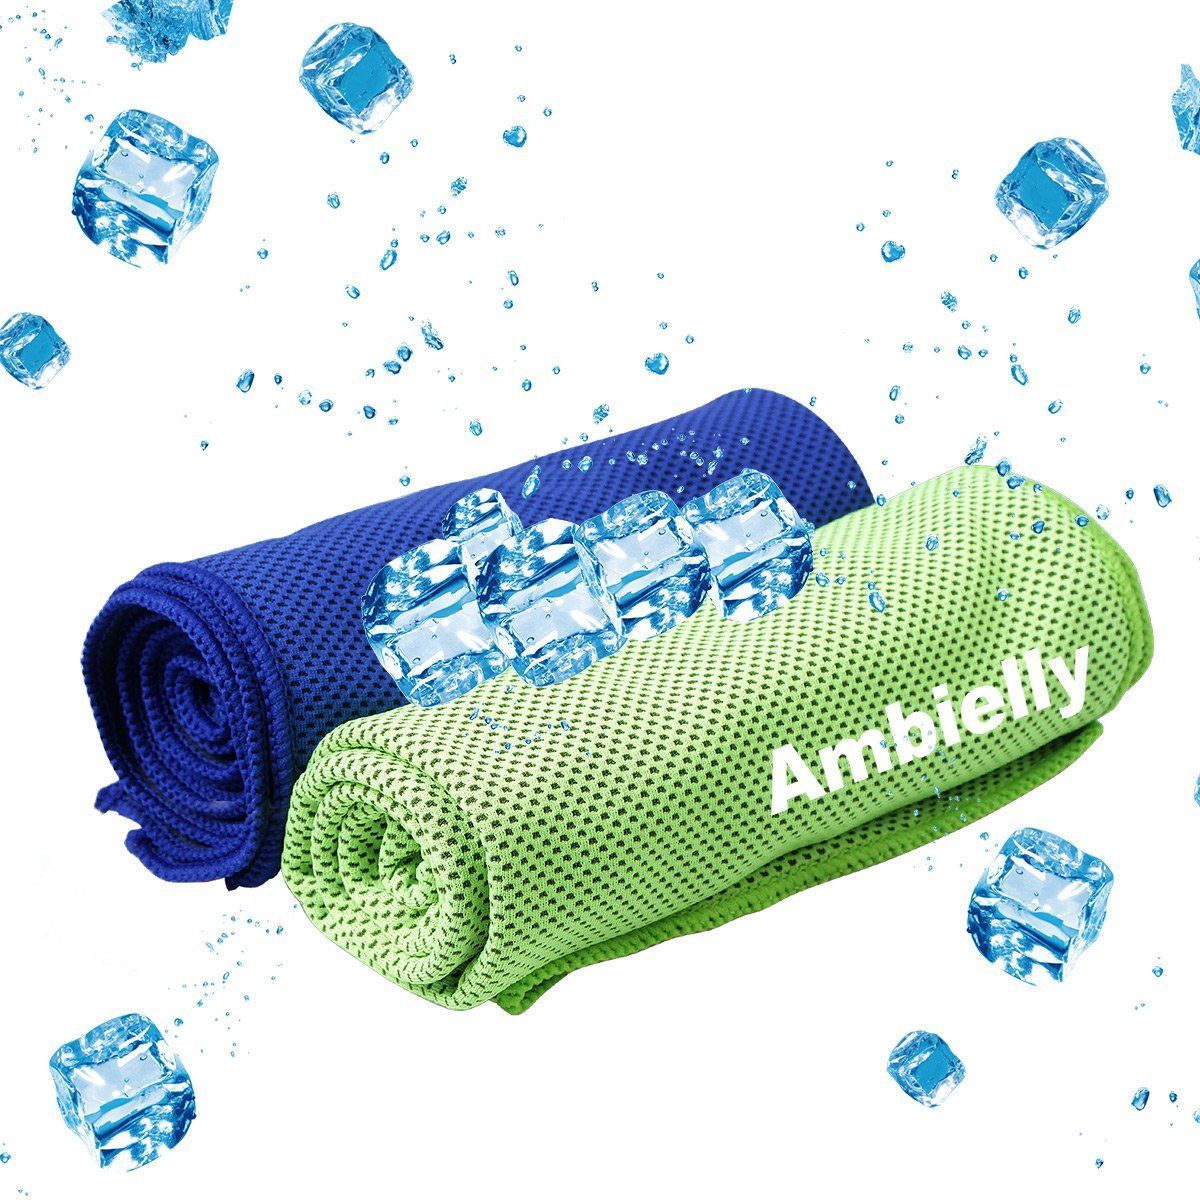 Ambielly Cooling Towel For Instant Relief 2 Pack 40 X12 Stay